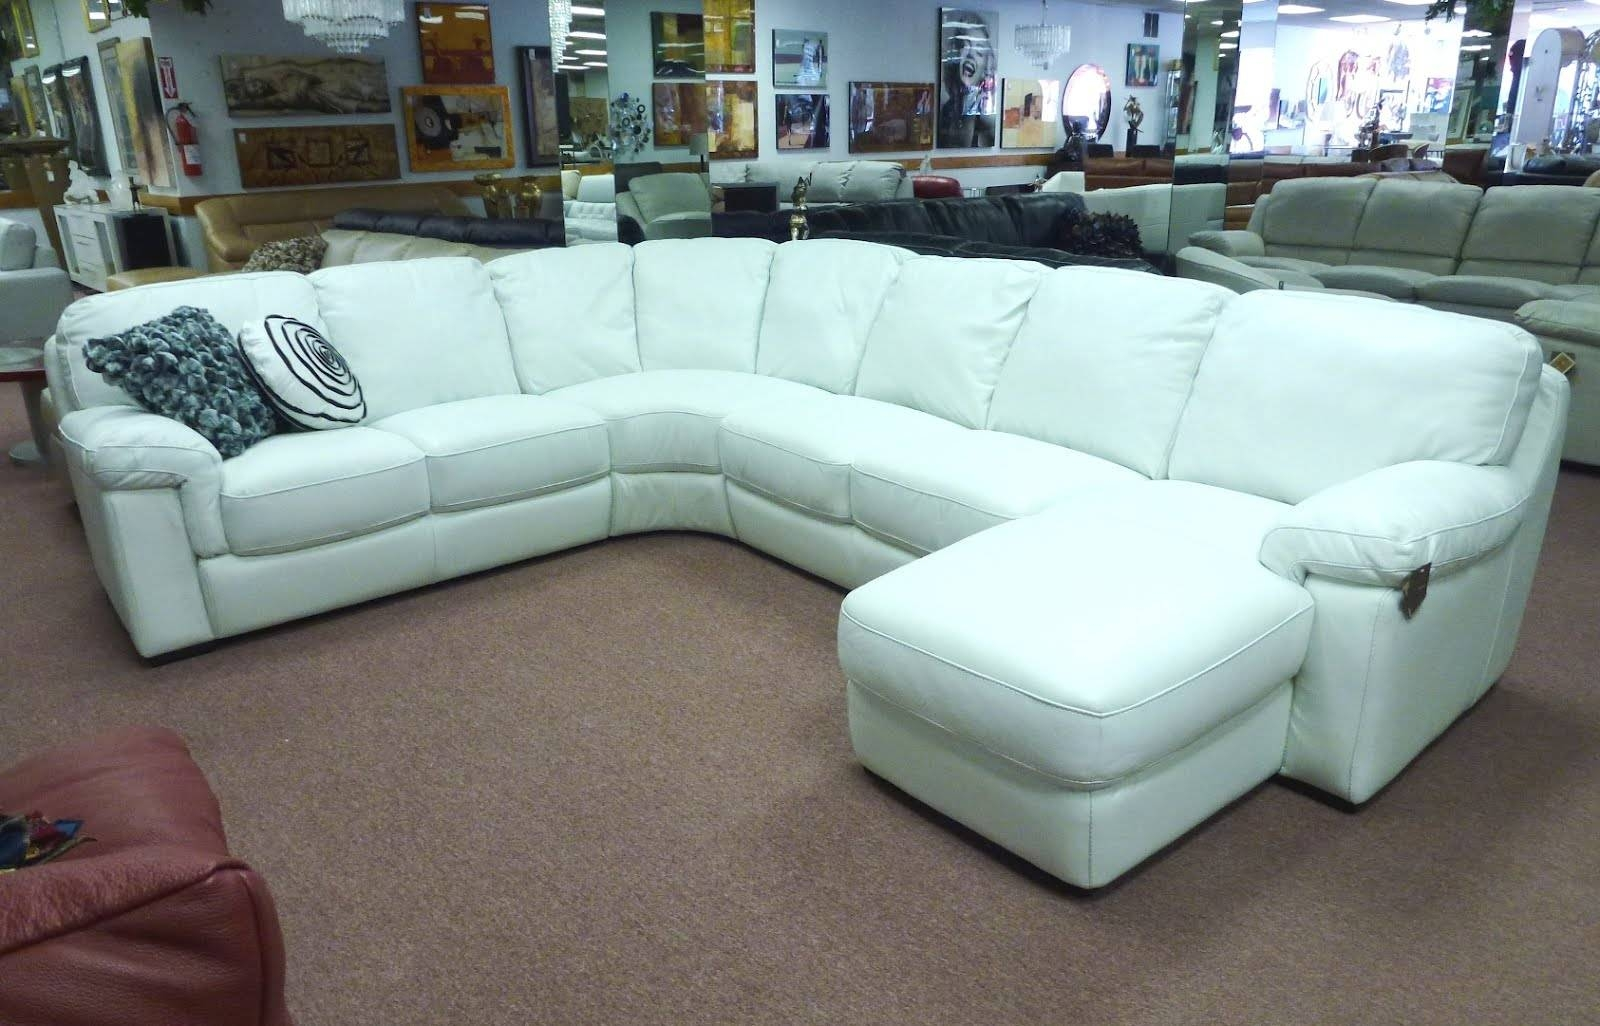 Bonded Leather White Sectional Sofa - S3Net - Sectional Sofas Sale within White Sectional Sofa For Sale (Image 5 of 30)